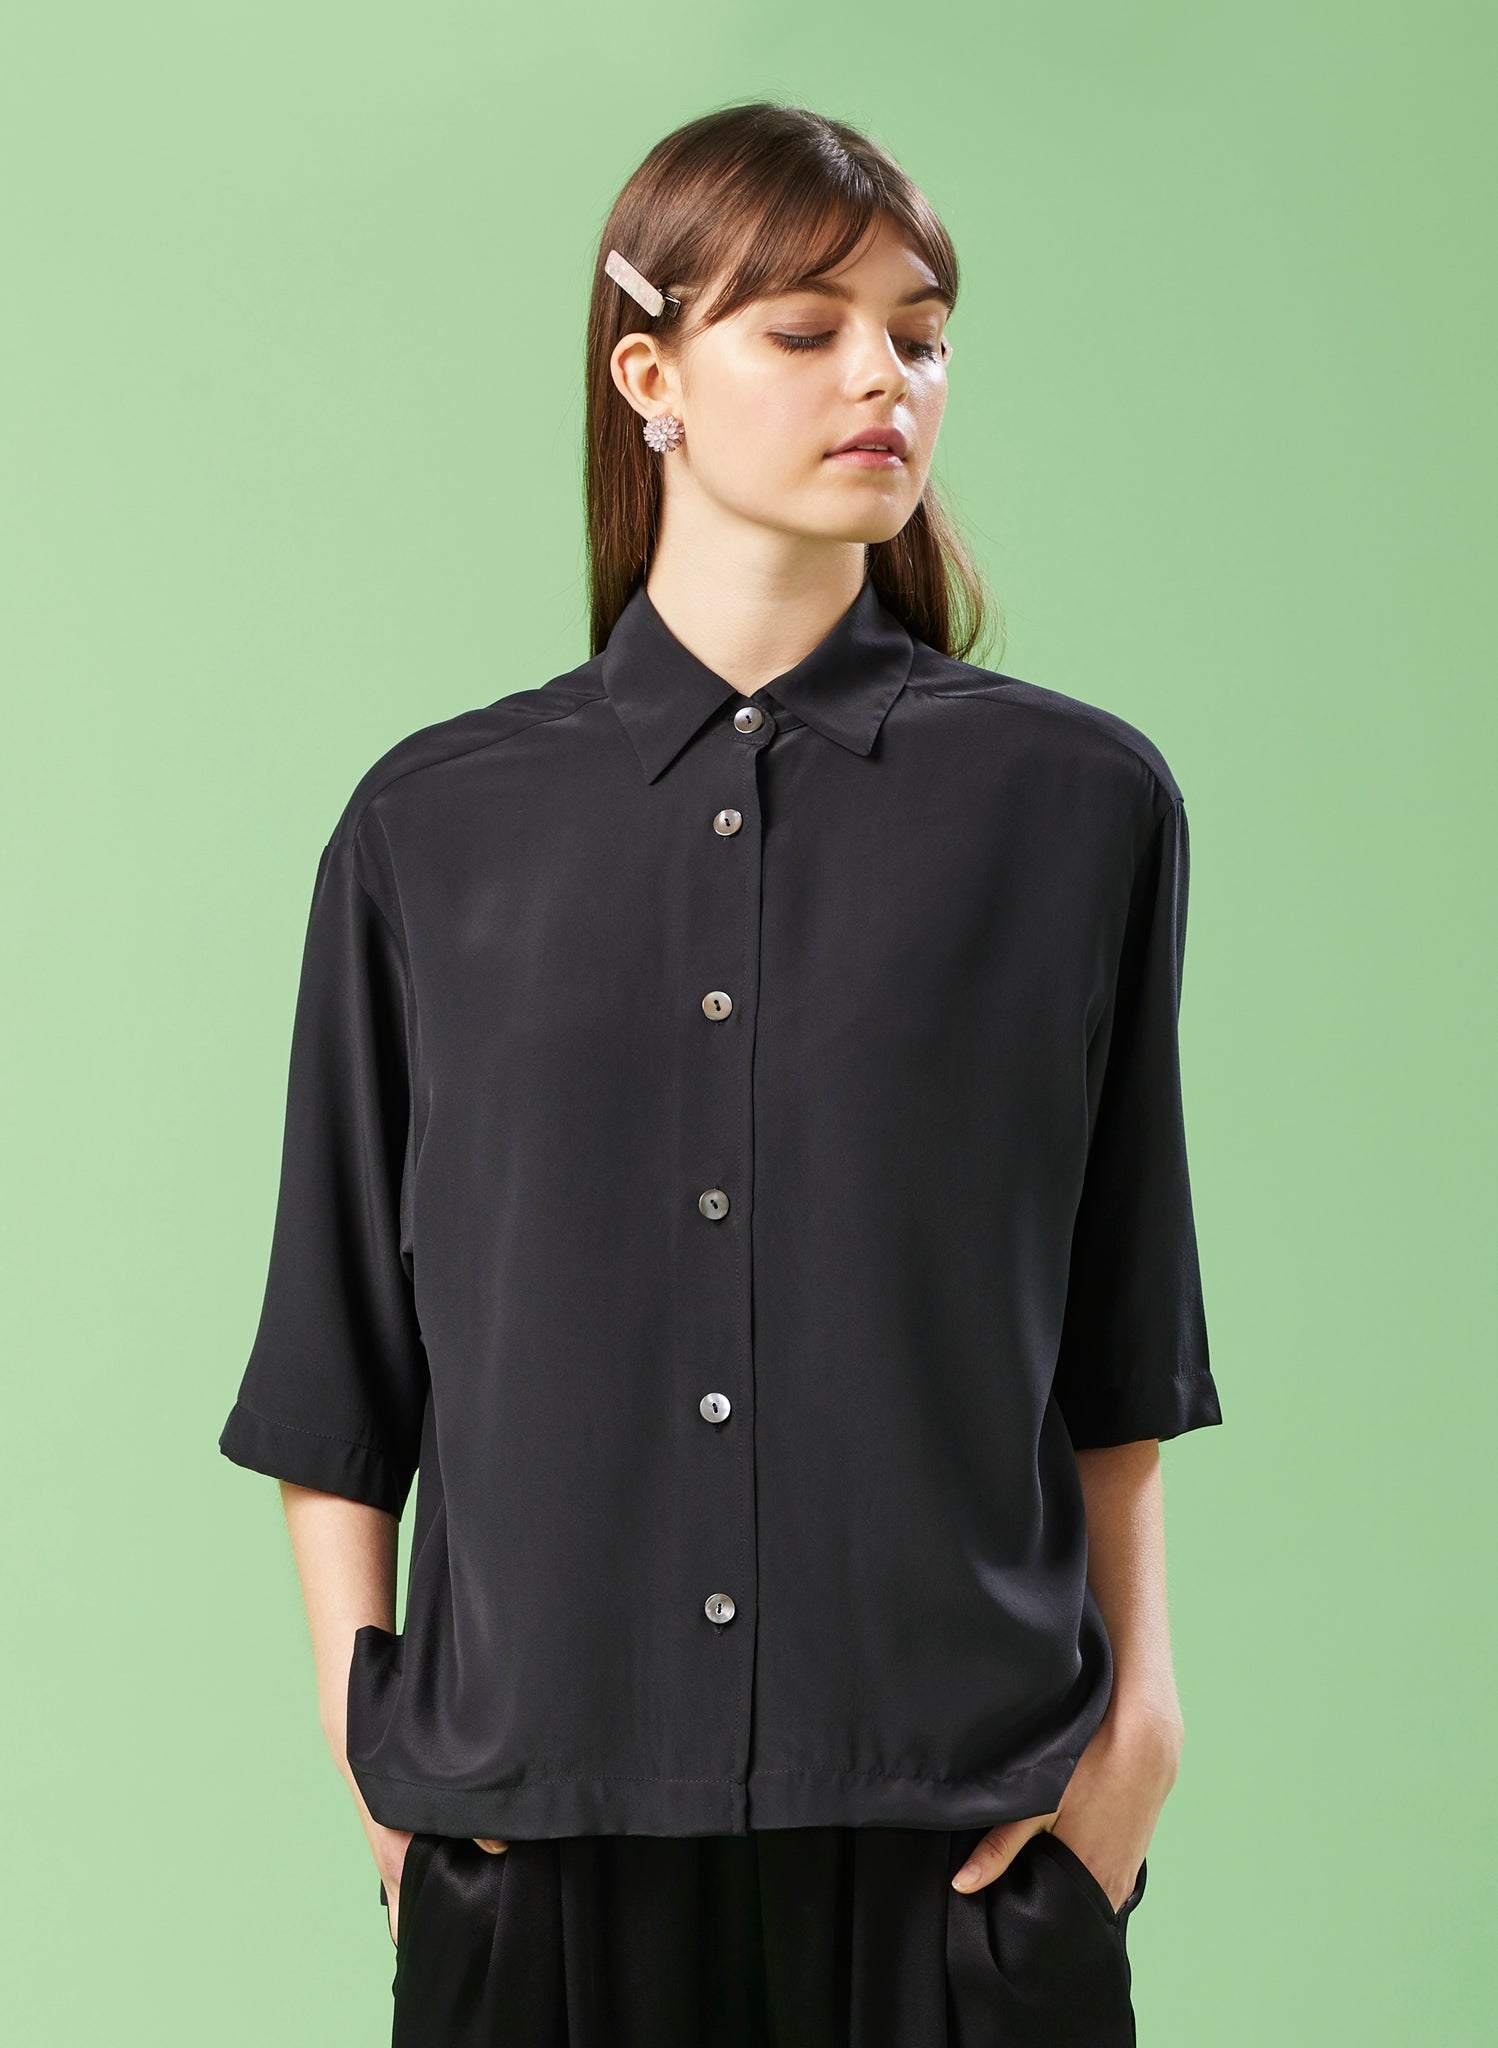 Back & Beyond Ebony Silk Shirt Jacket